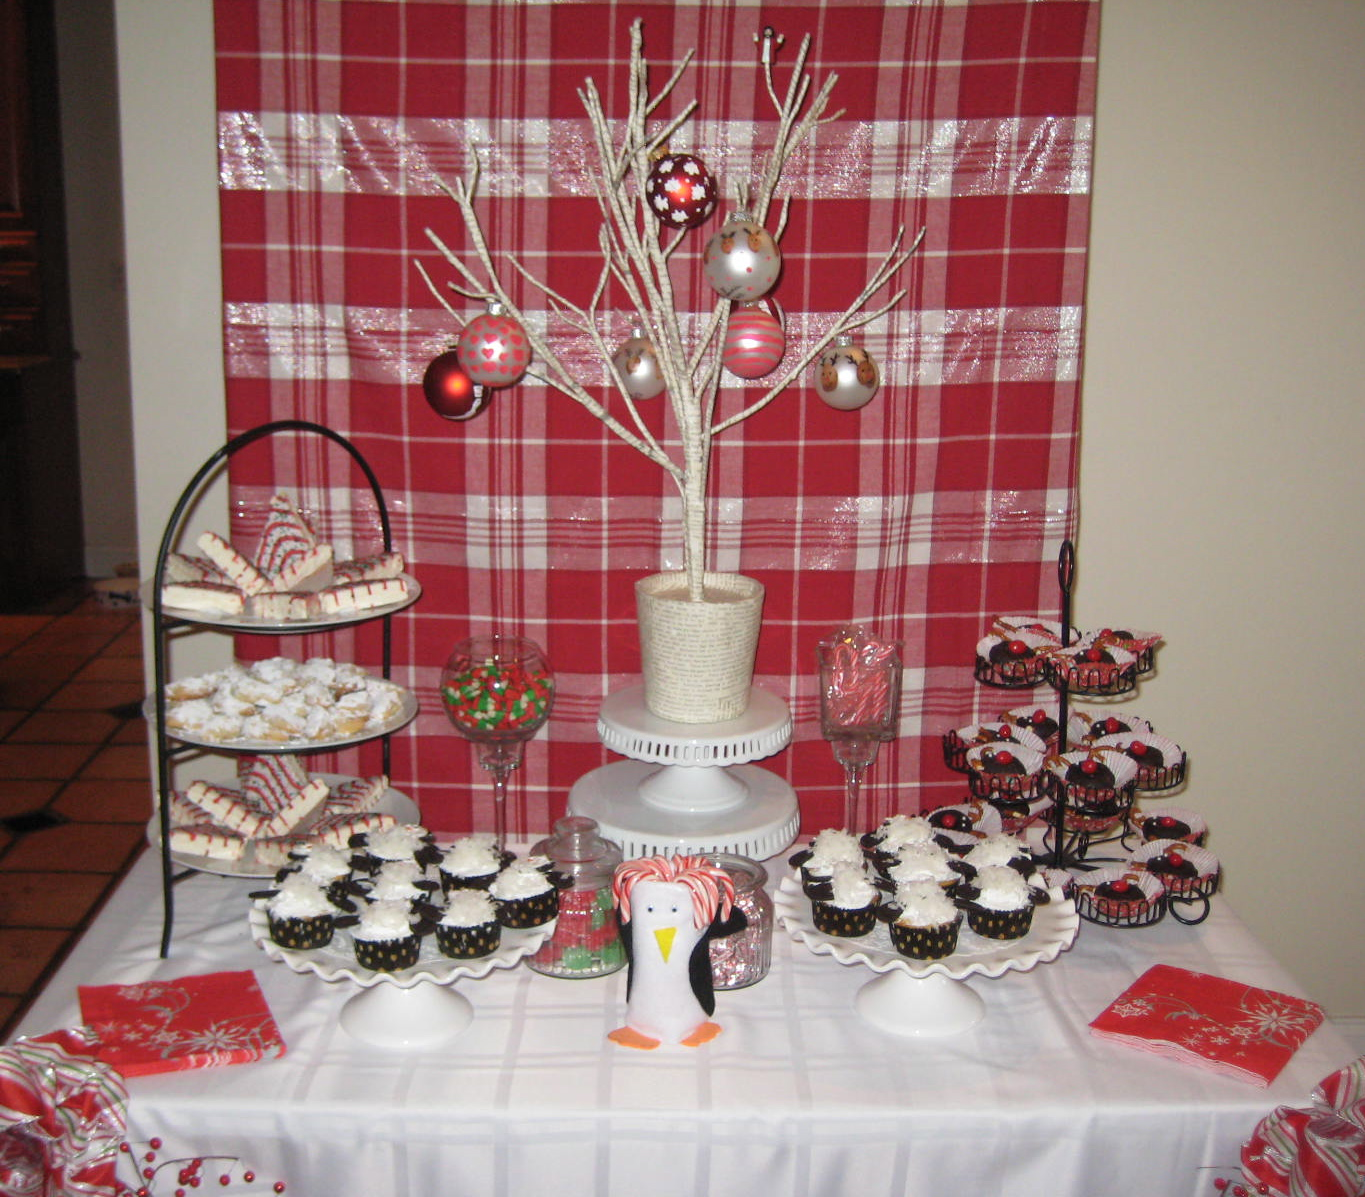 Christmas Party Themes: Creative Party Ideas By Cheryl: Christmas Pajama Party